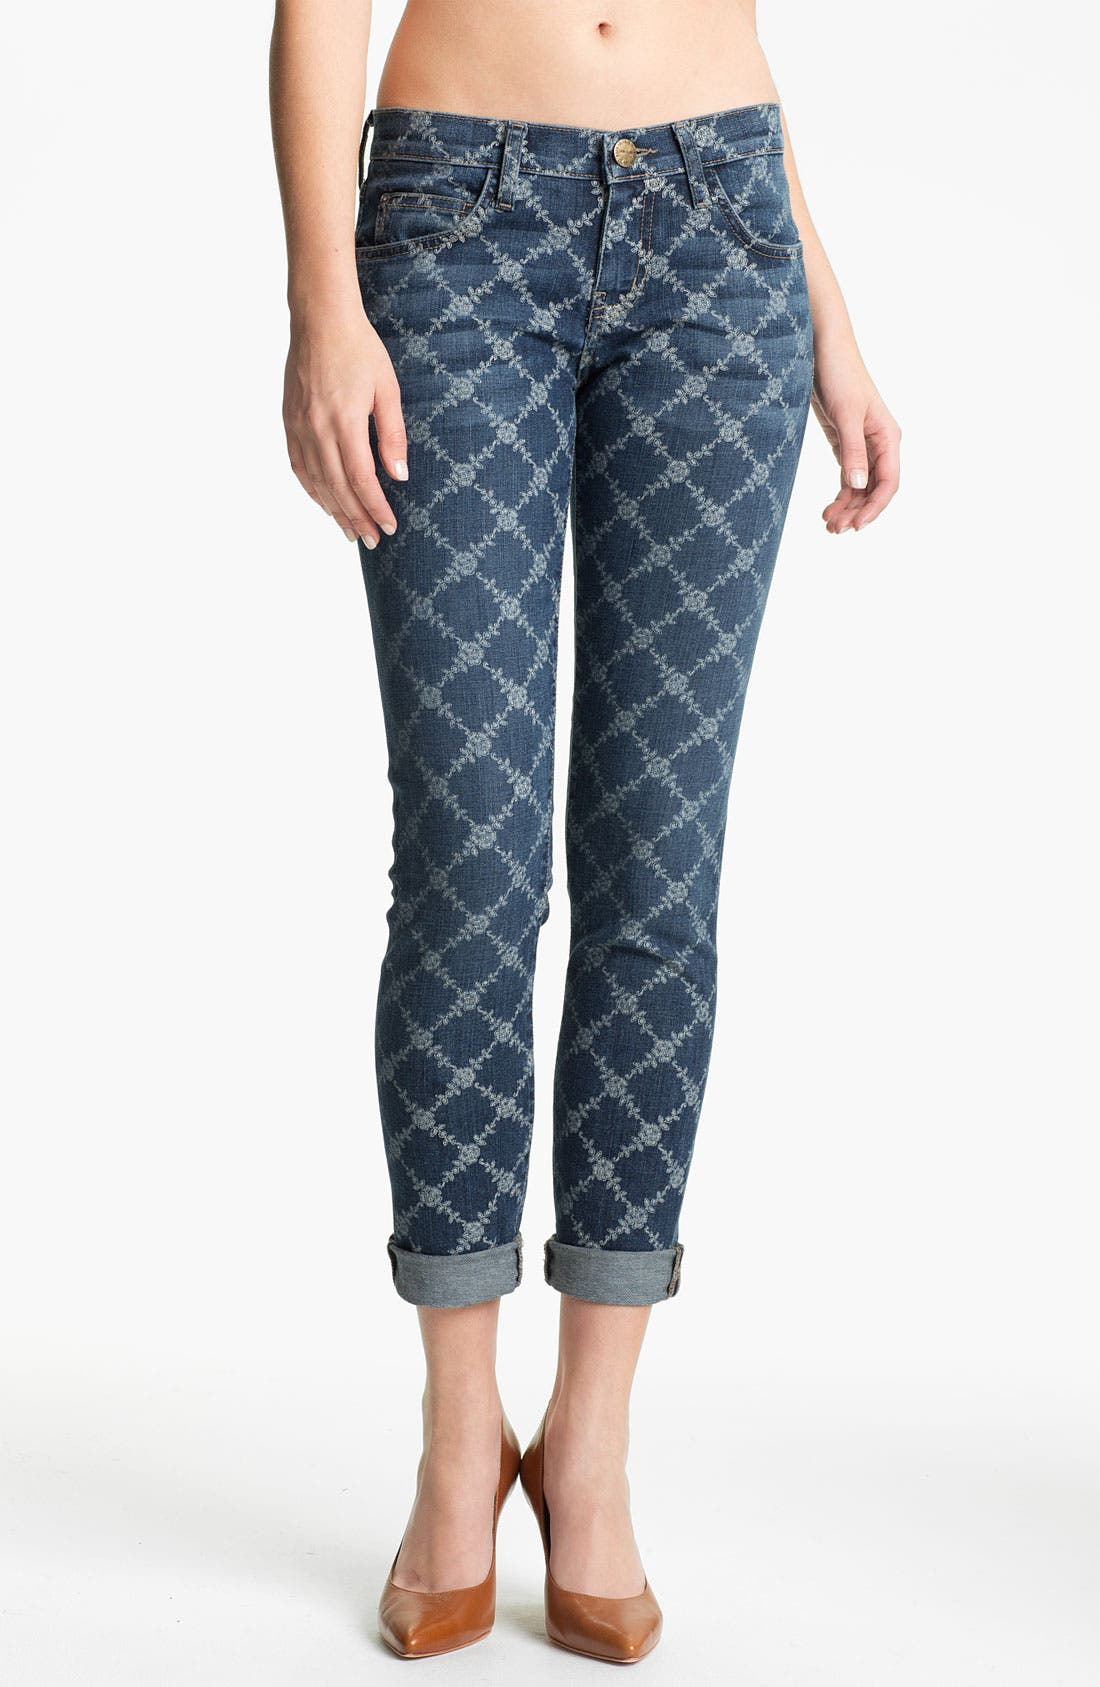 Alternate Image 1 Selected - Current/Elliott 'The Rolled' Print Stretch Jeans (Indigo Rose Lattice)